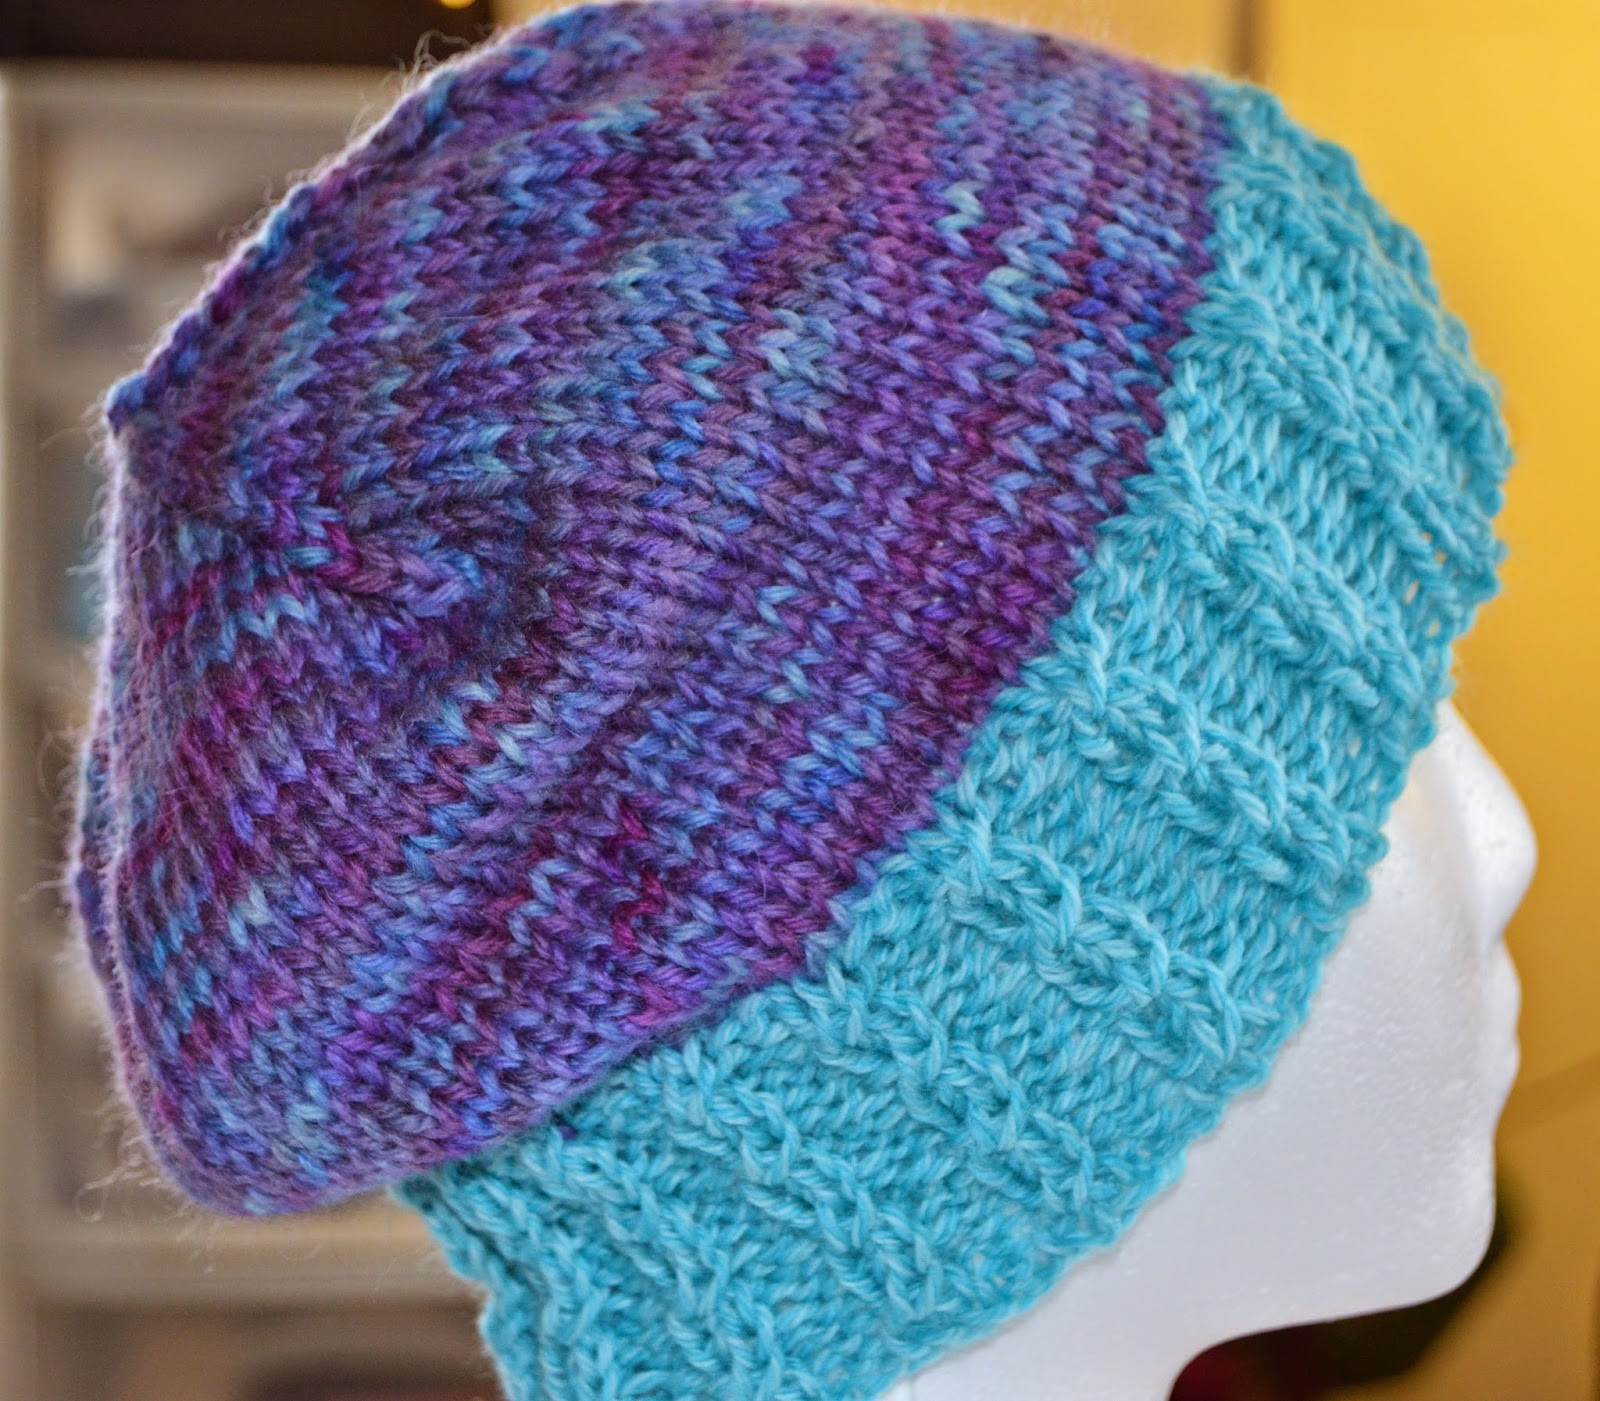 yarn dyed with food coloring, Cascade 220, Cascade Quatro, fake cables, cabled ribbing, twisted stitch, hat, beanie, toque